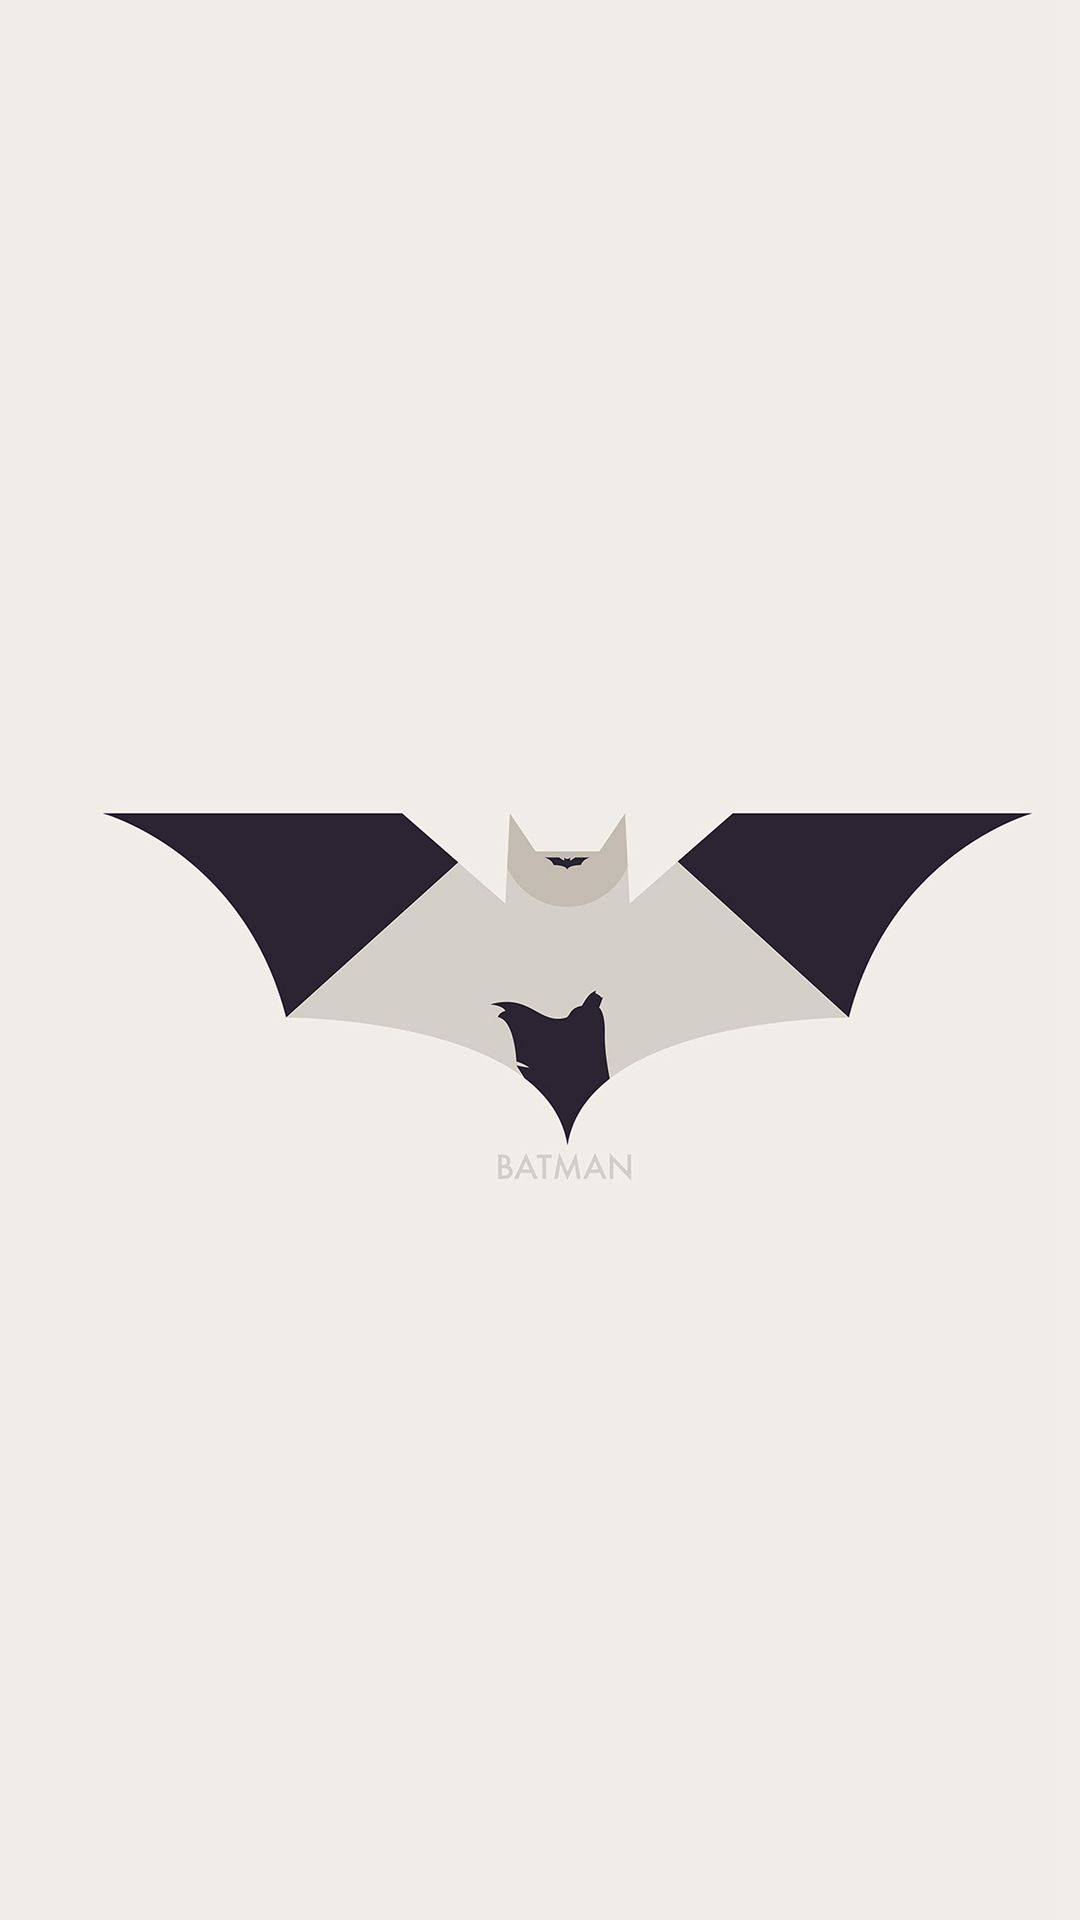 Art Batman Minimal Logo Illust Iphone 6 Wallpaper Download Iphone Wallpapers Ipad Wallpapers On Batman Wallpaper Batman Wallpaper Iphone Superhero Wallpaper